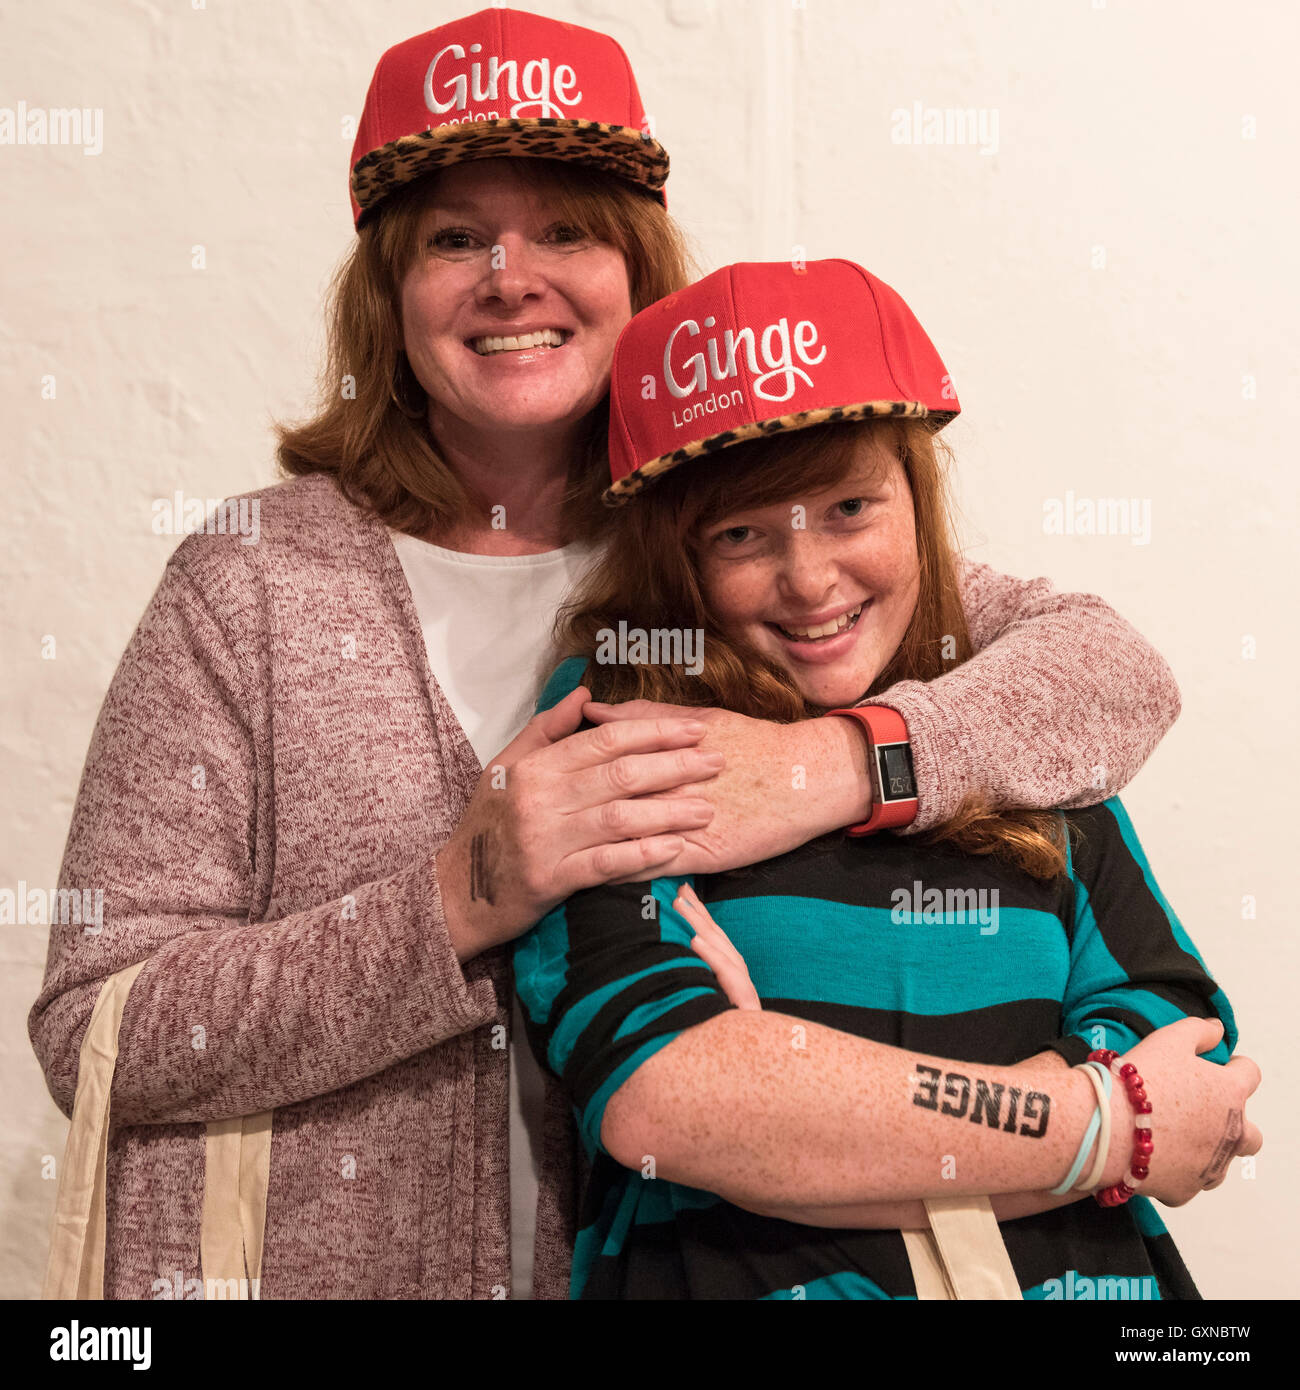 London, UK. 17th September, 2016.   A mother and daughter sport matching red-inspired caps.  Ginger, auburn and - Stock Image